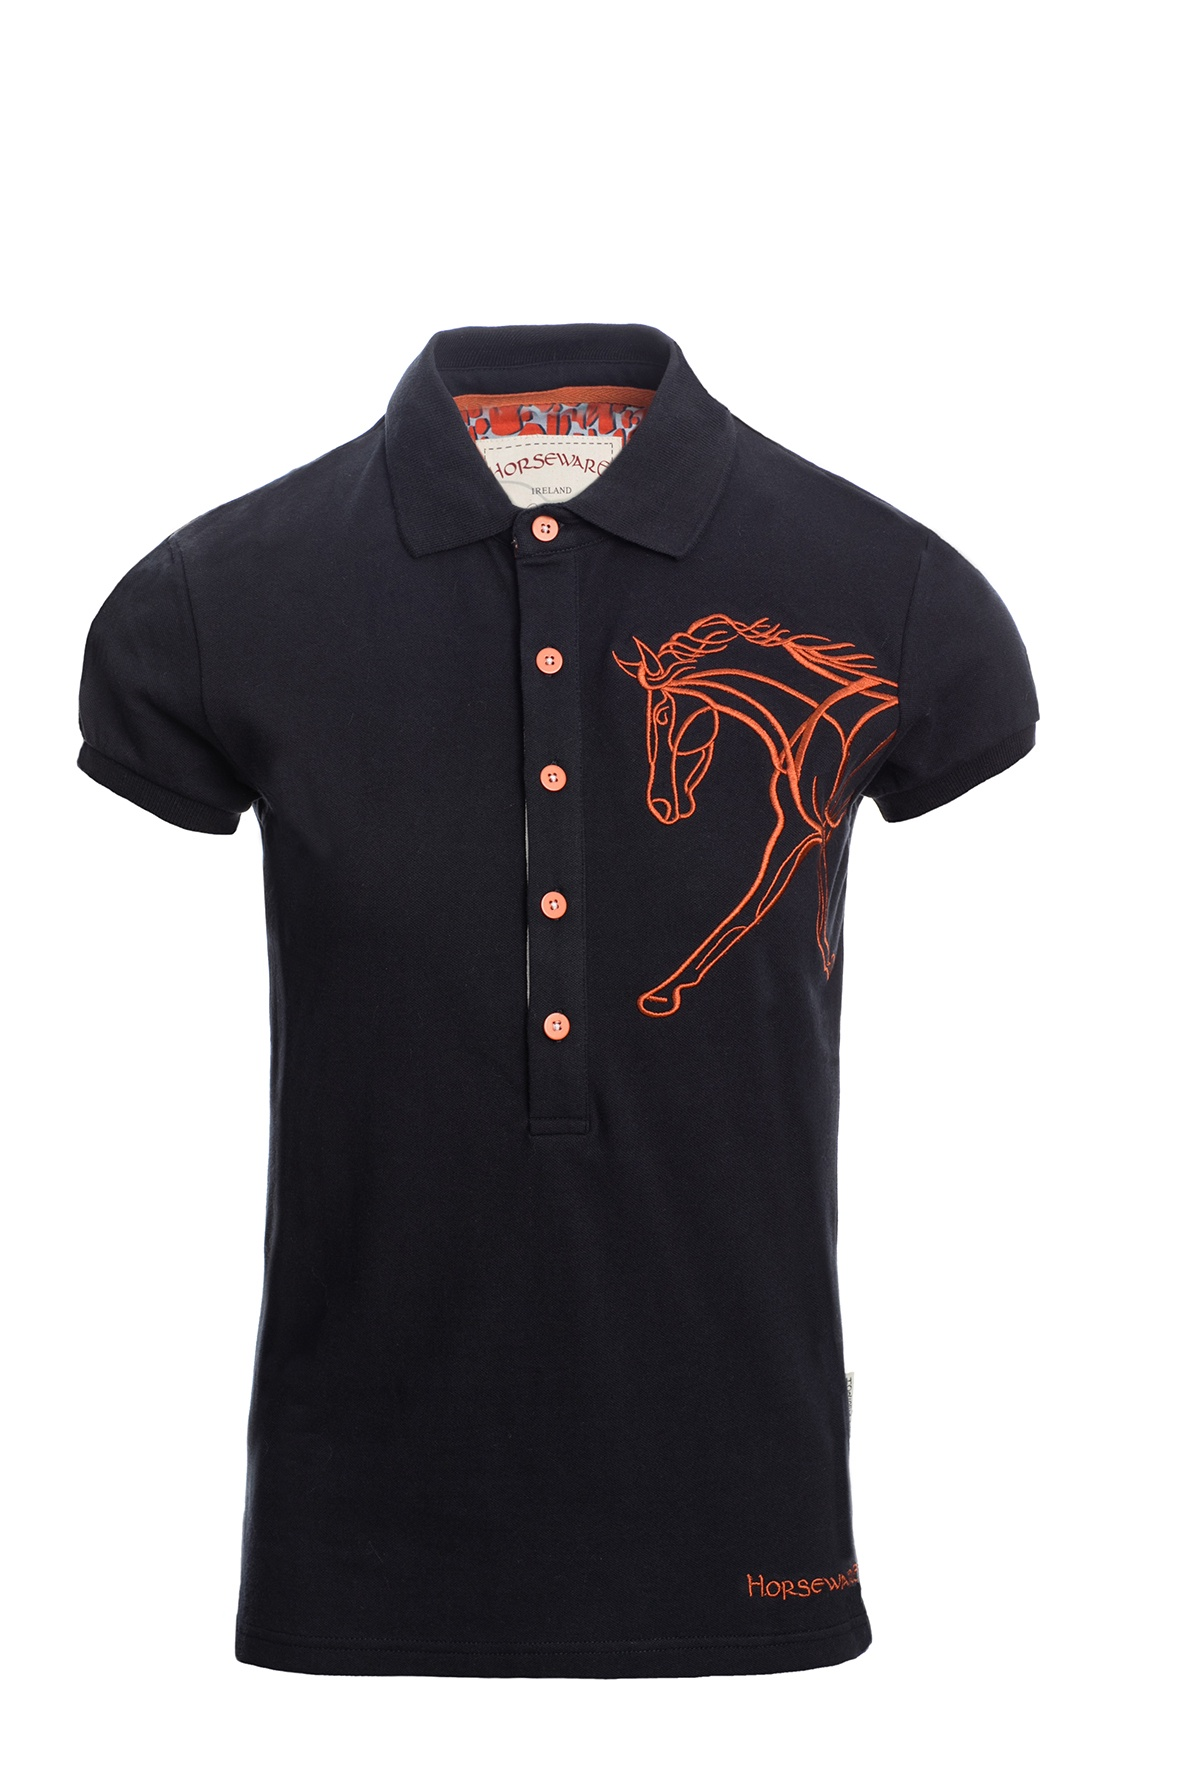 Horseware Flamboro Polo Shirt